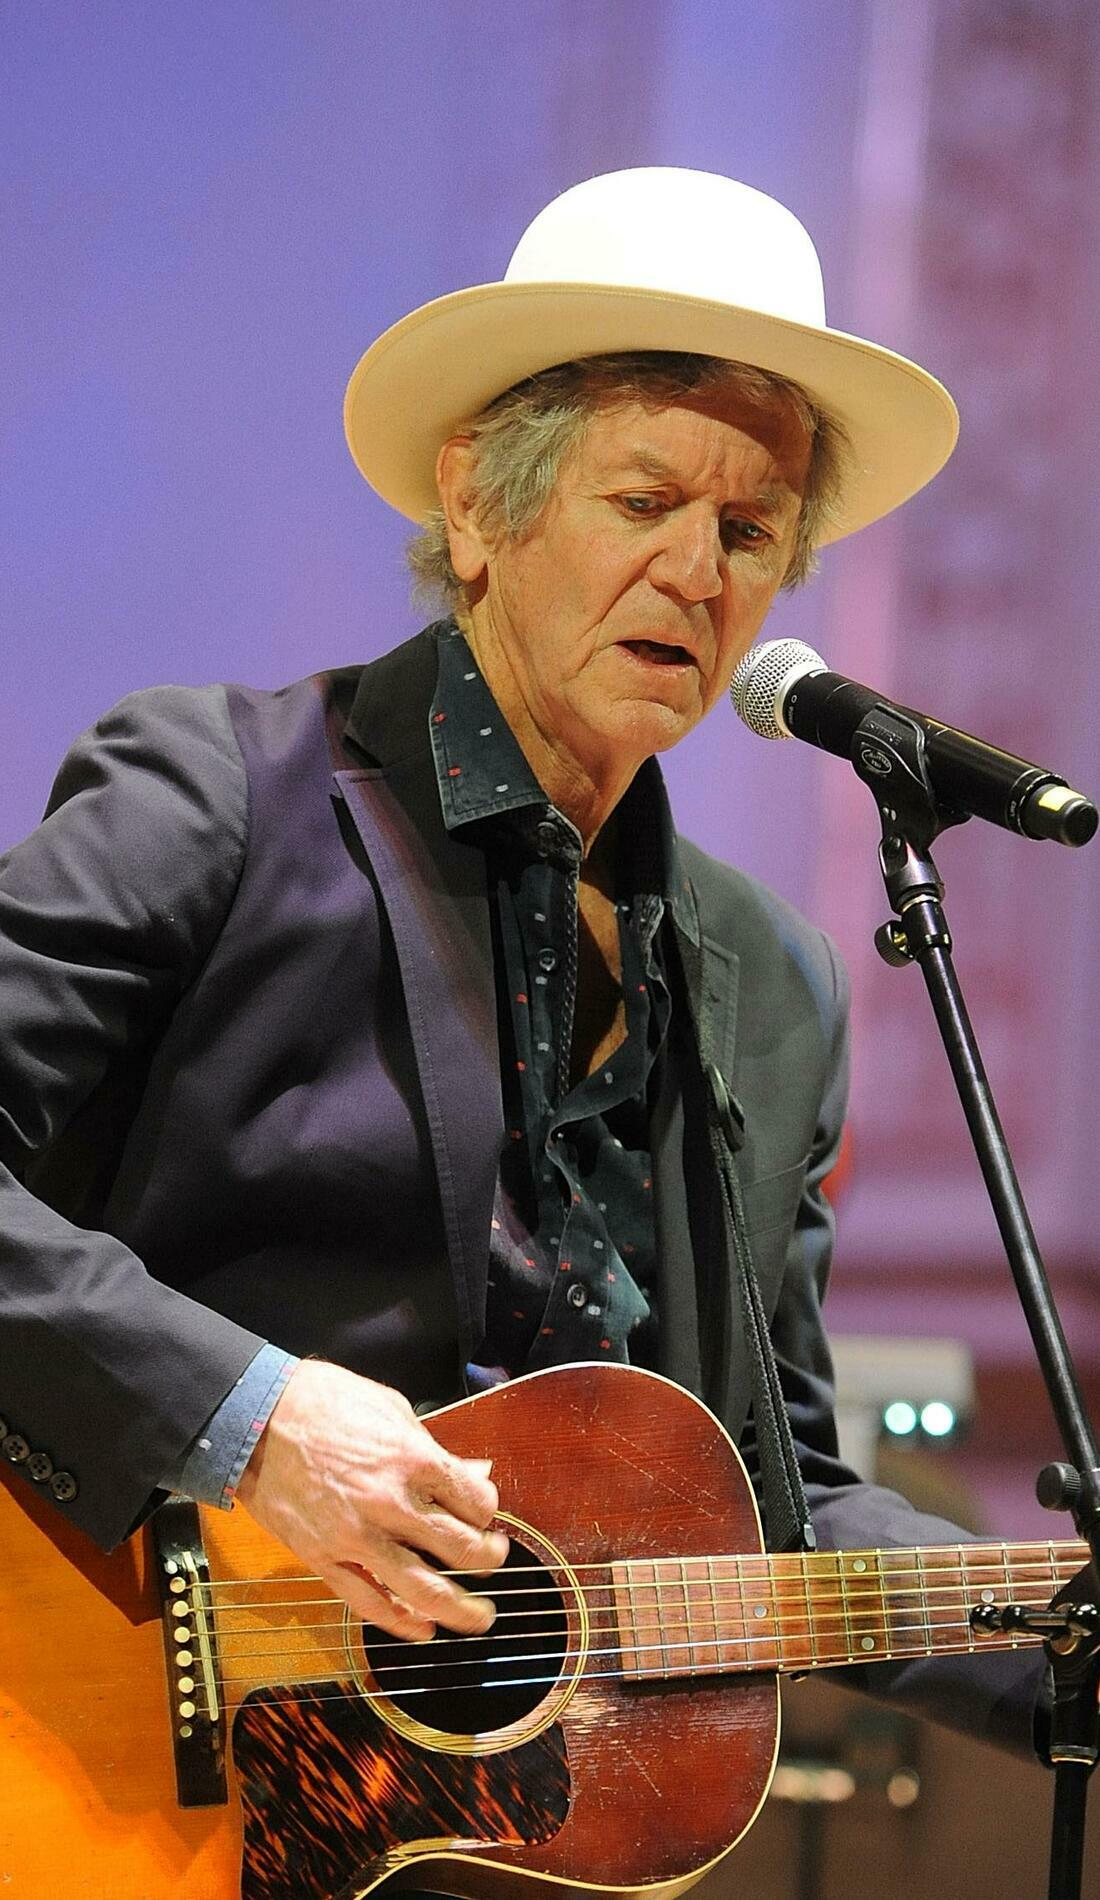 A Rodney Crowell live event